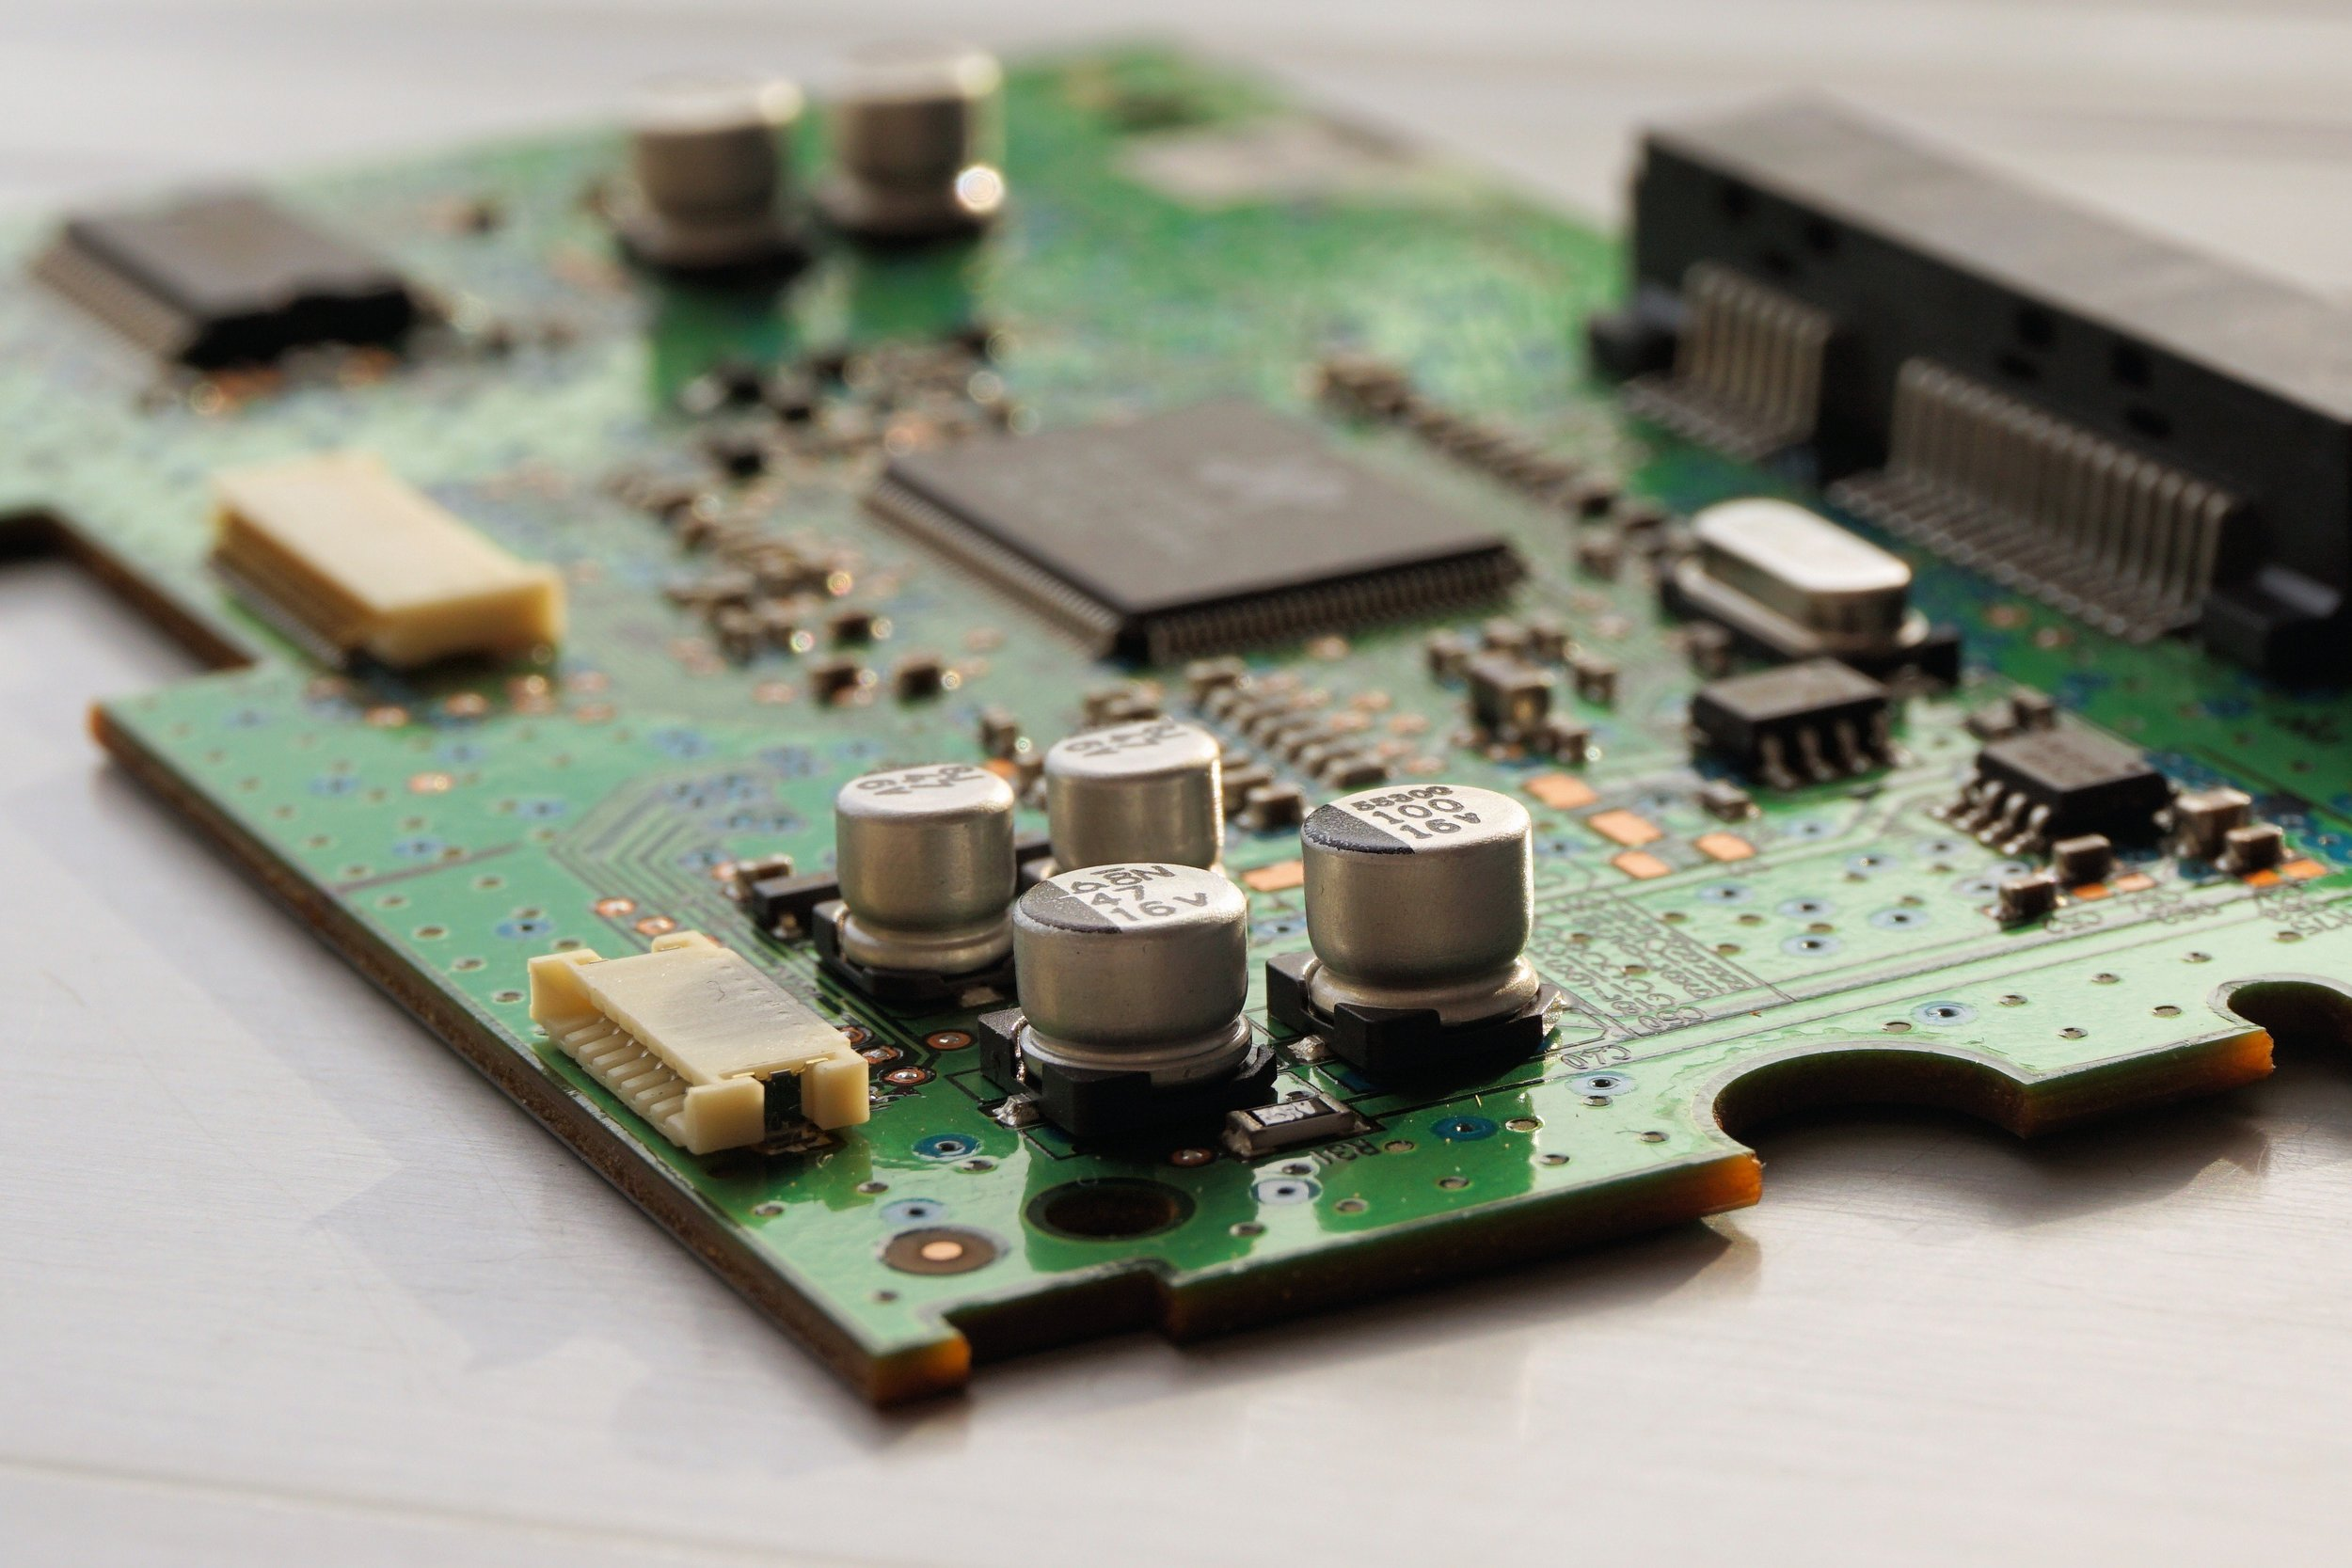 Obsolescence & allocation - One of the most unplanned aspects of any circuit design is unexpected obsolescence and allocation of key components in your design.Talk to us about sourcing obsolete parts or hard to find components today to help get your project back on track.